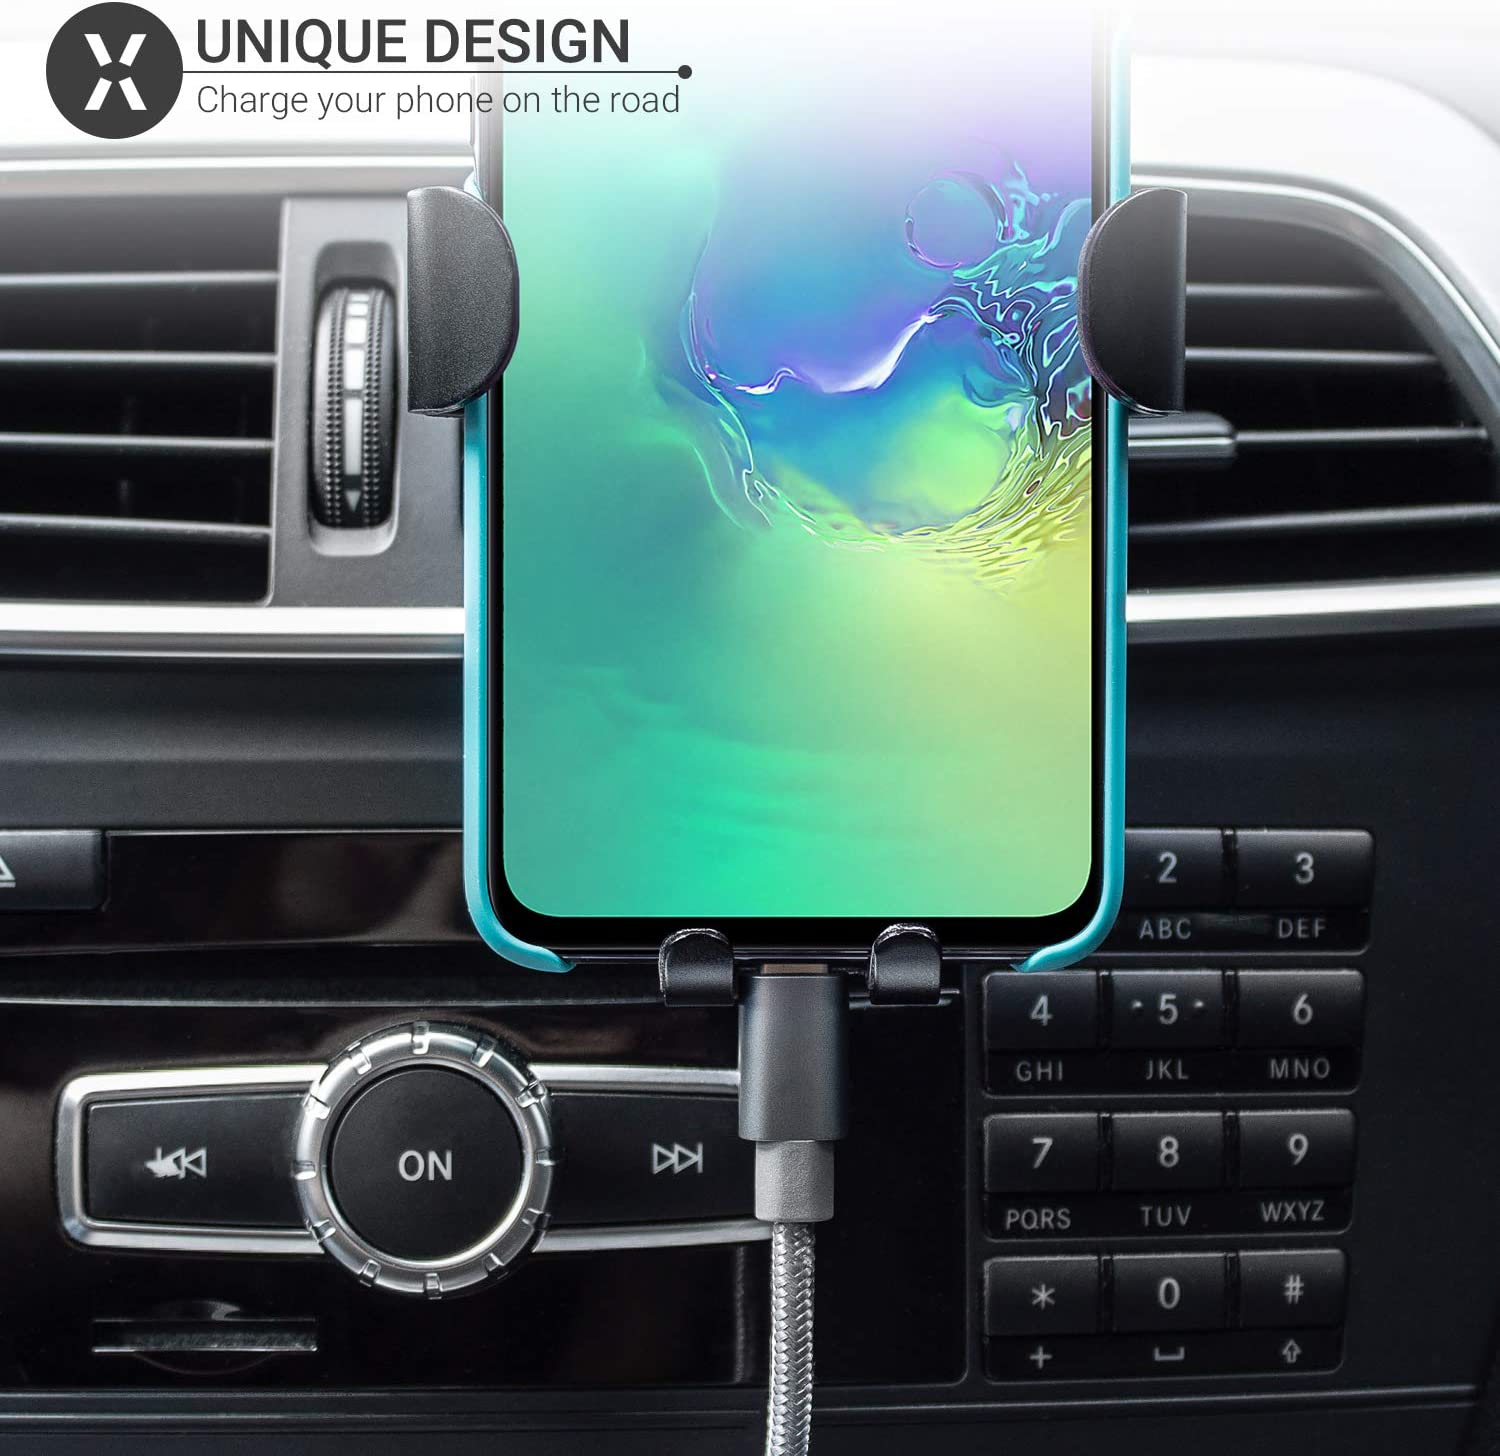 Gravity Car Air Vent Mount with Auto Grip Olixar Air Vent Phone Holder Samsung Galaxy Universal Smartphone Car Dock for iPhone Motorola Black Invent Huawei Devices and More